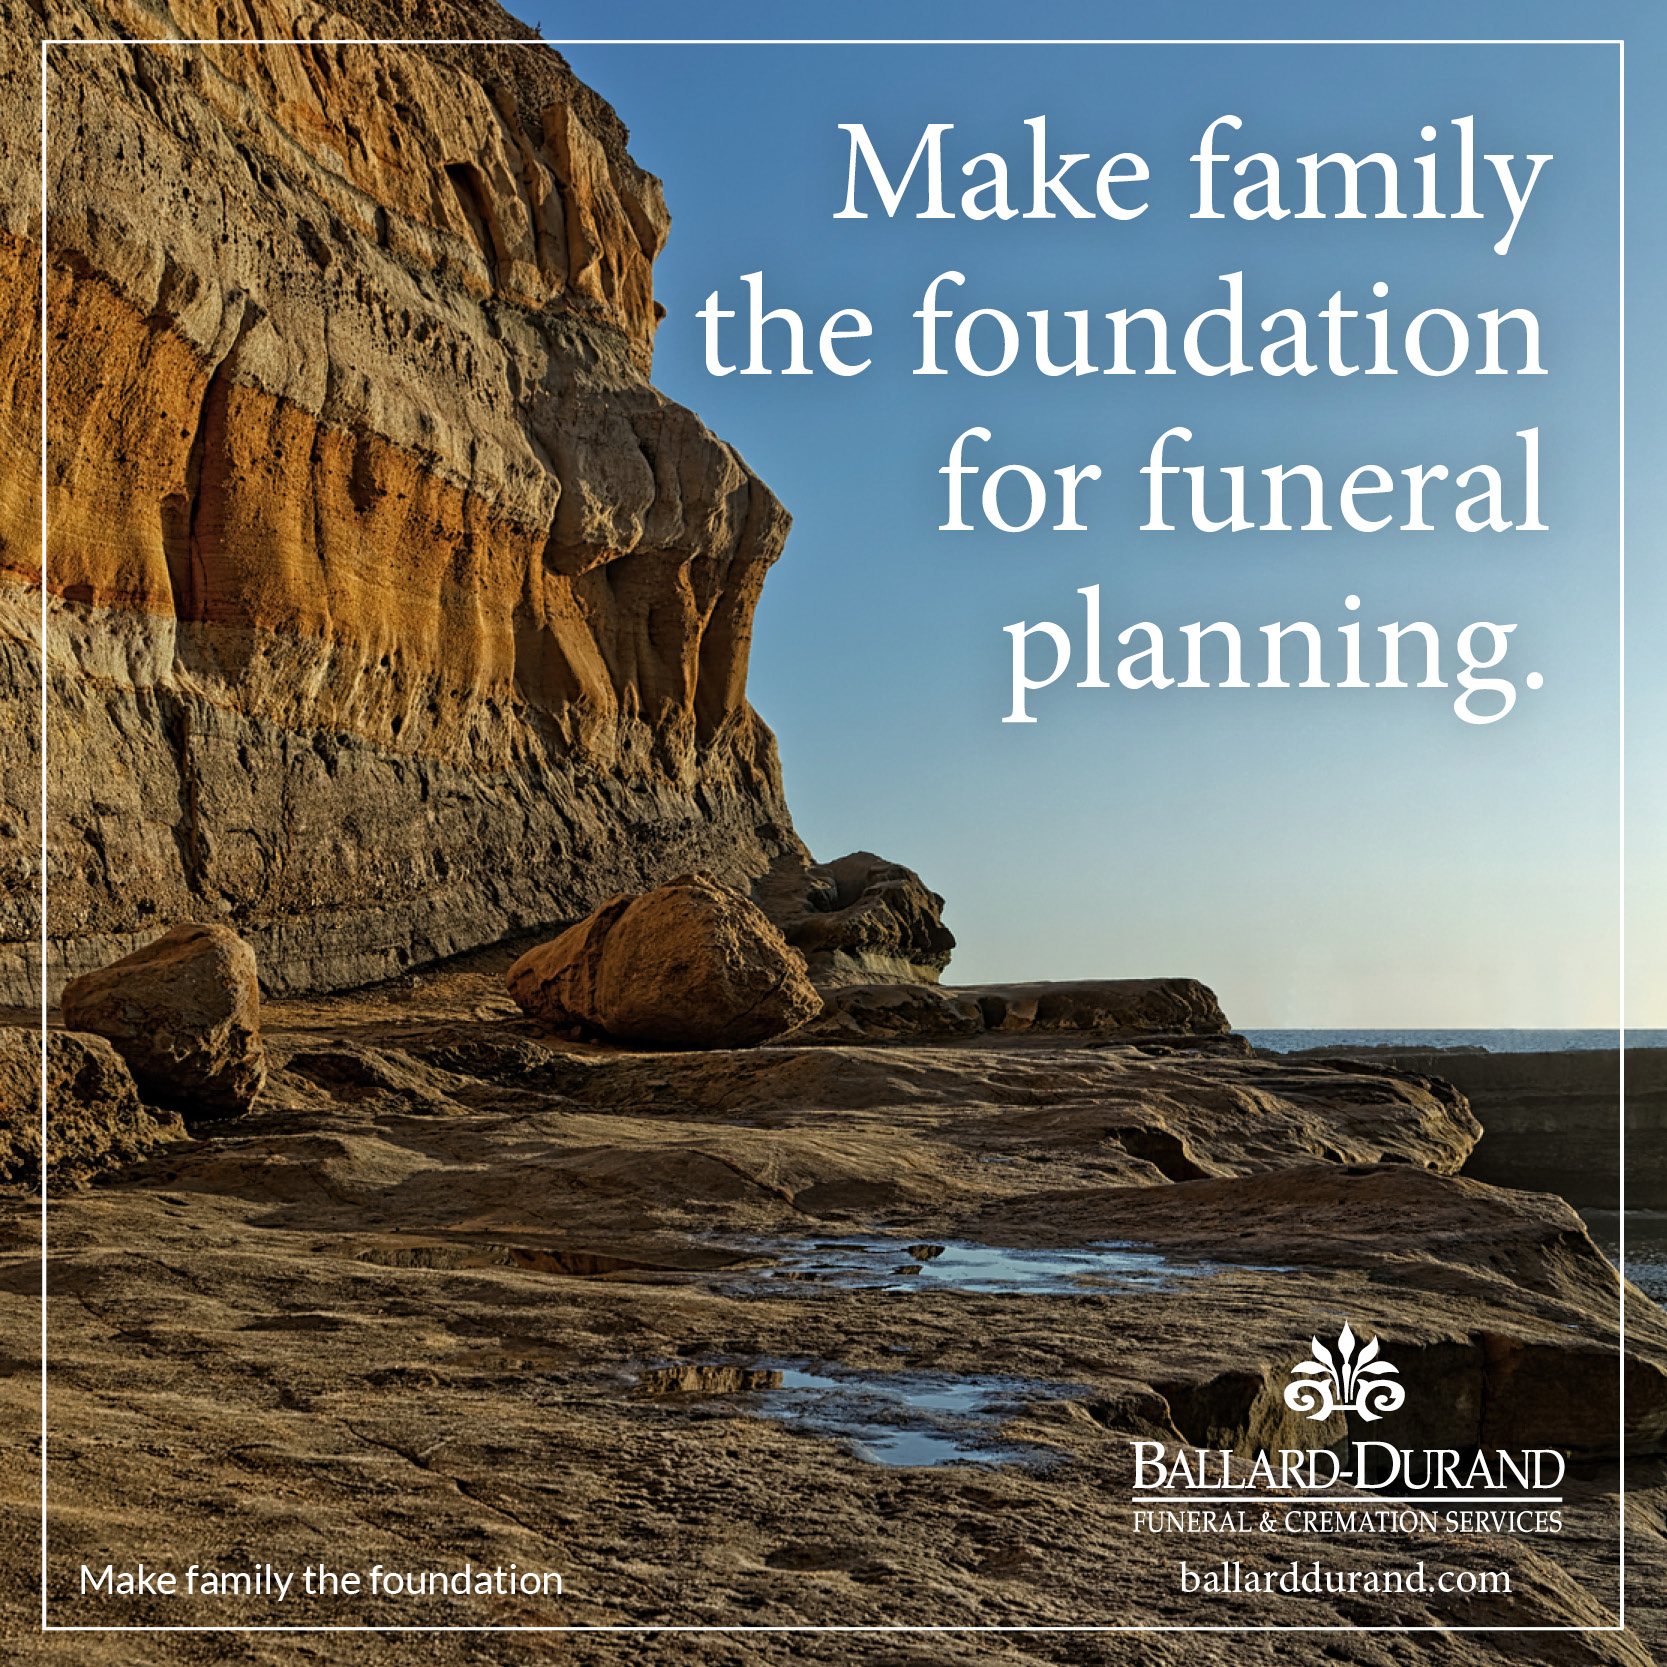 There are two ways to take care of funeral planning: 1) you can plan your own funeral in advance or 2) your survivors can plan your funeral for you after your death.